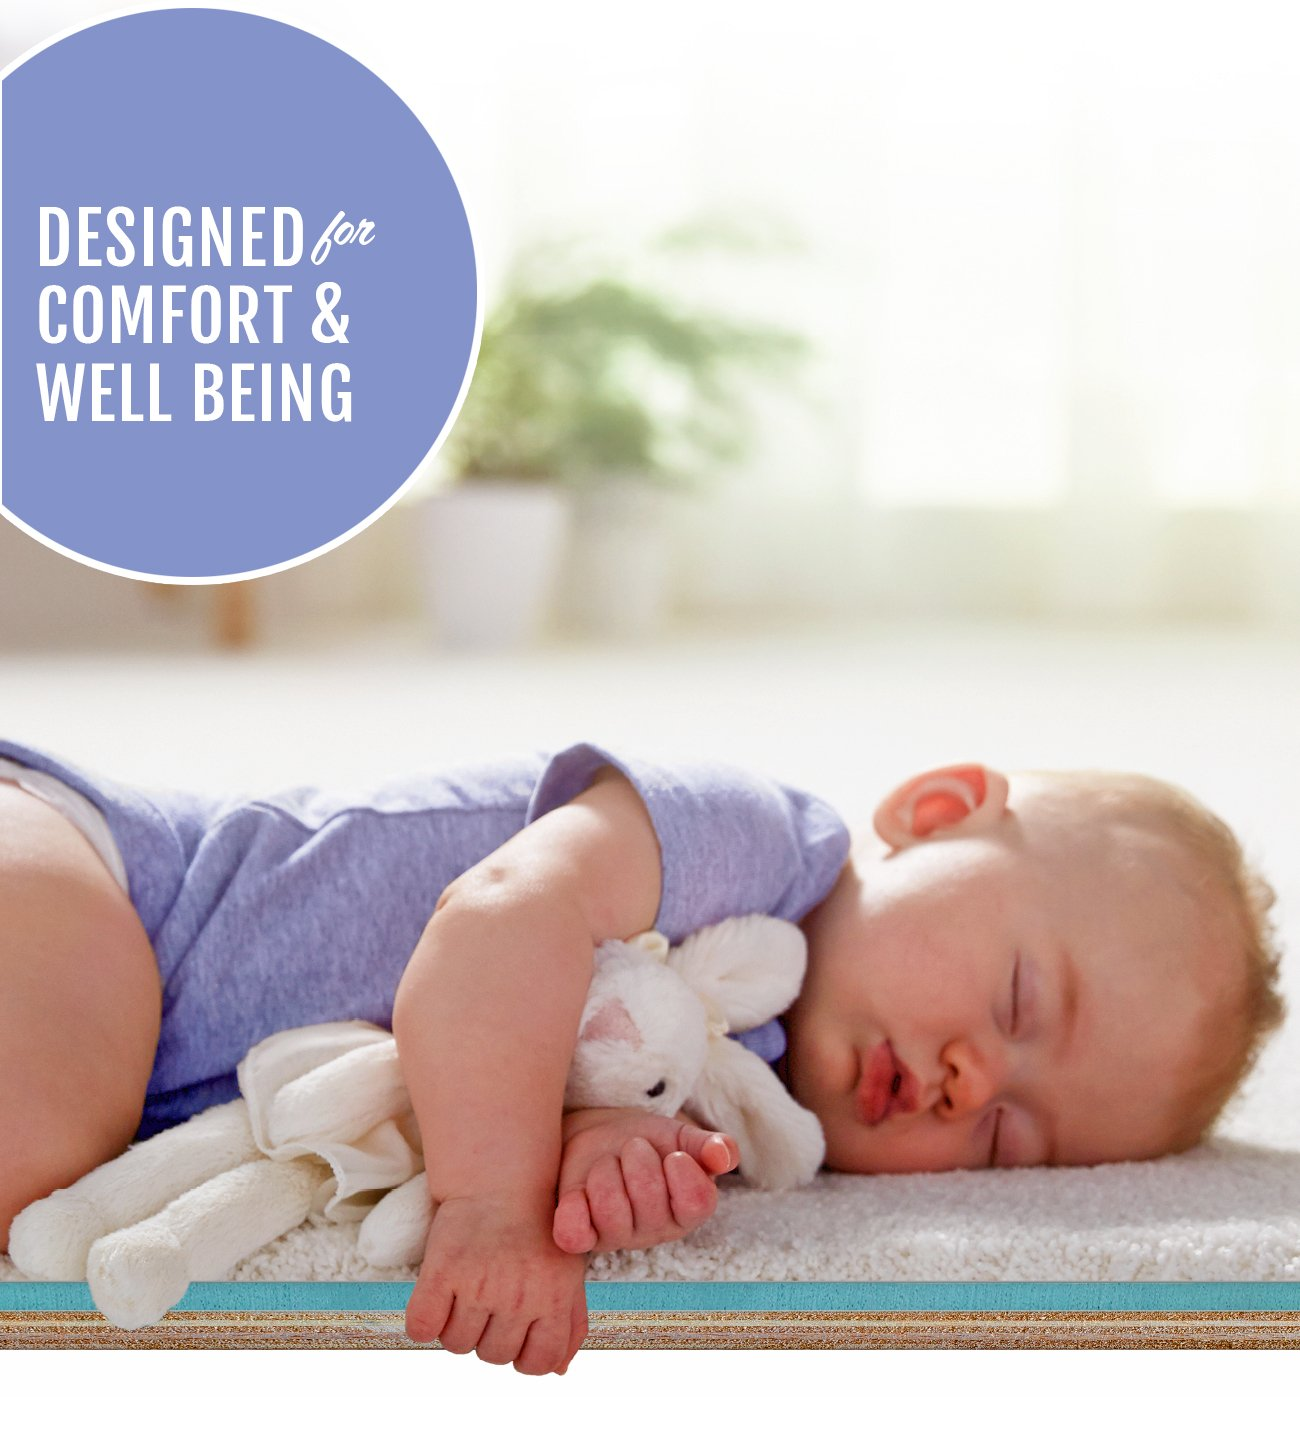 Stainmaster Designed for Comfort and Well Being